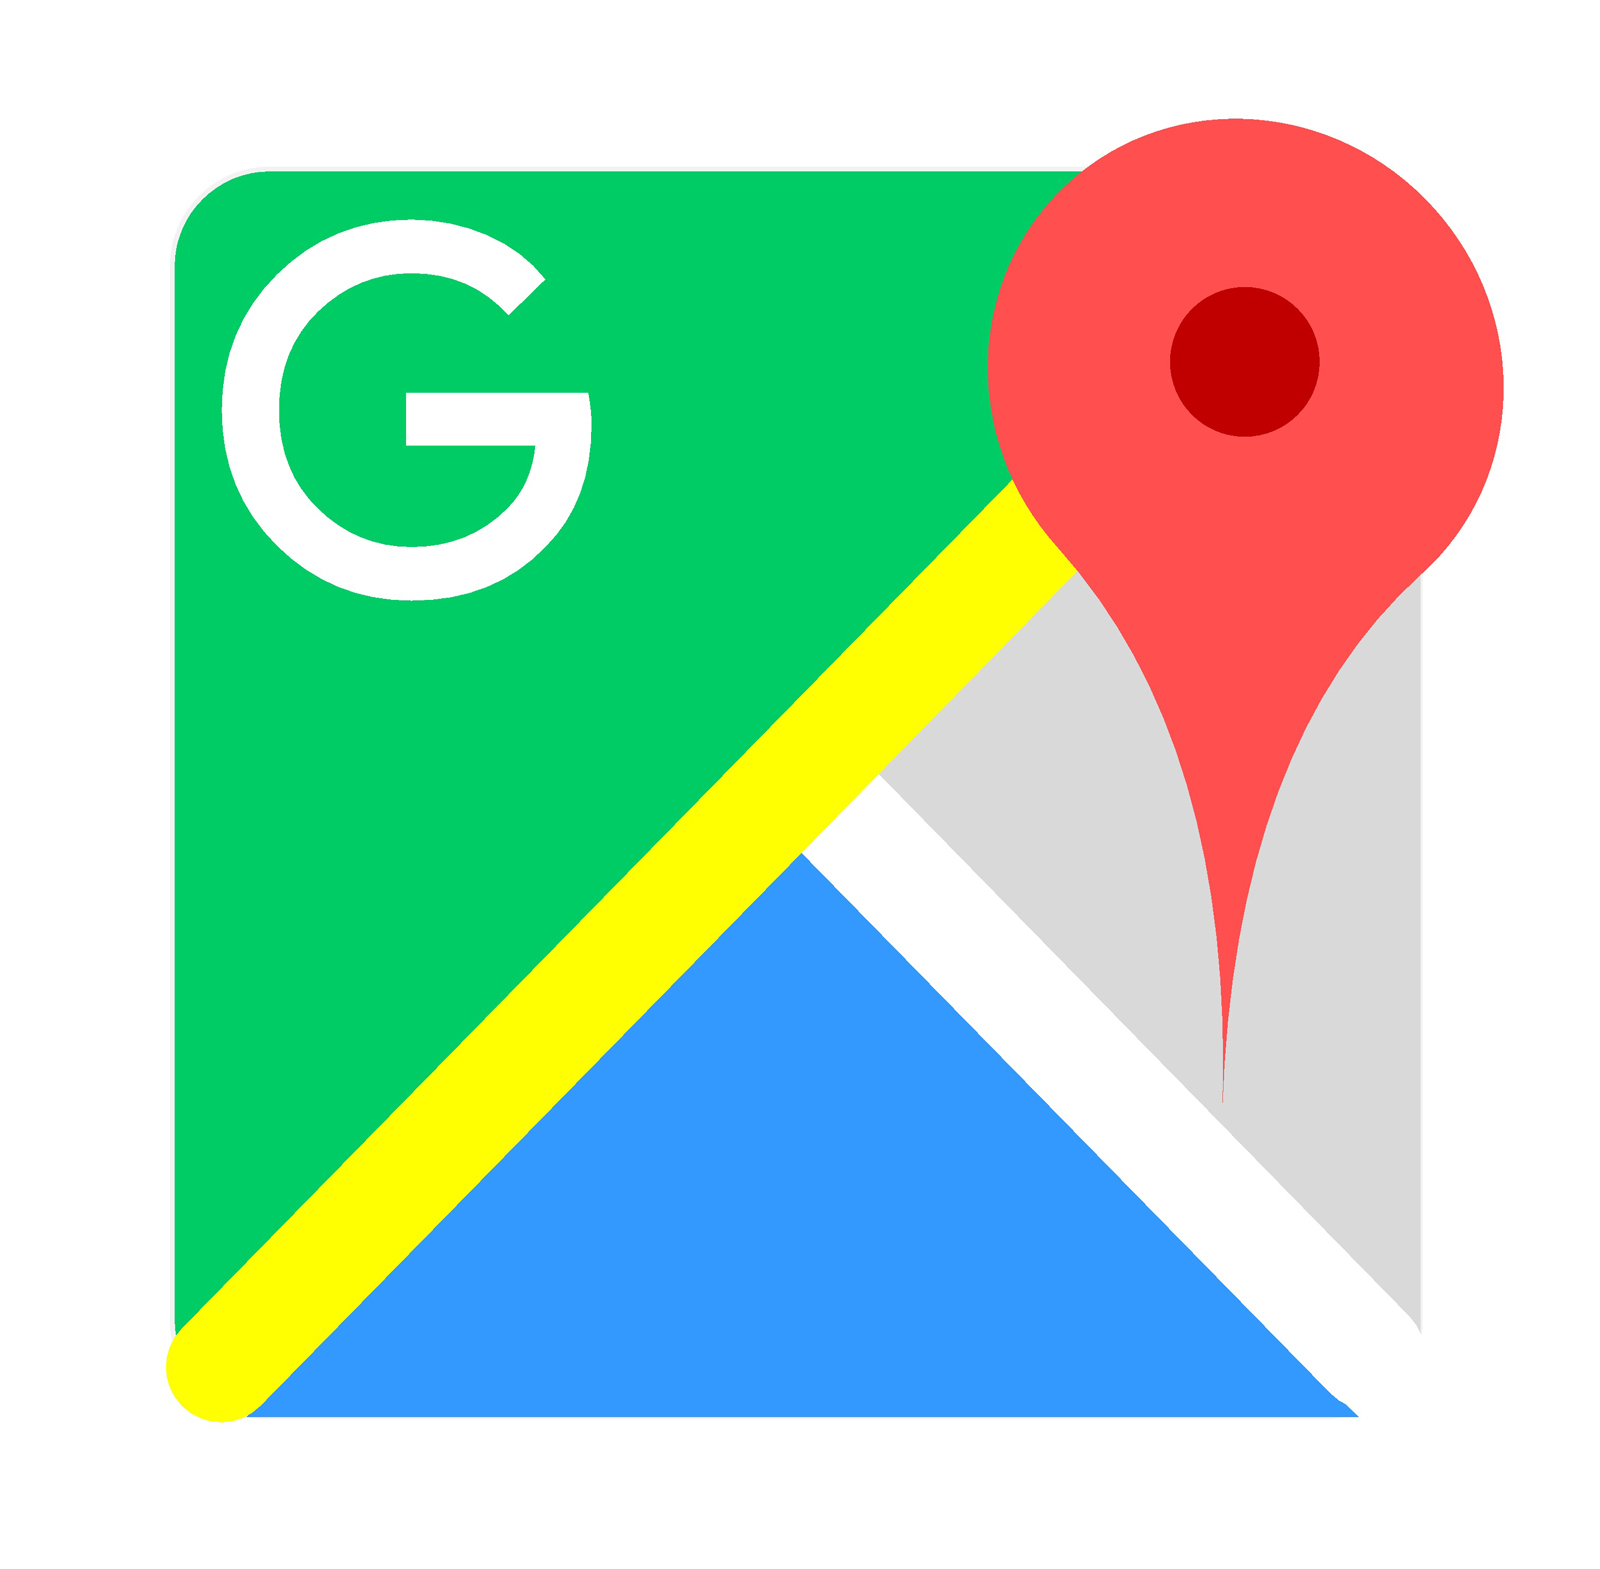 The app icon for Google Maps